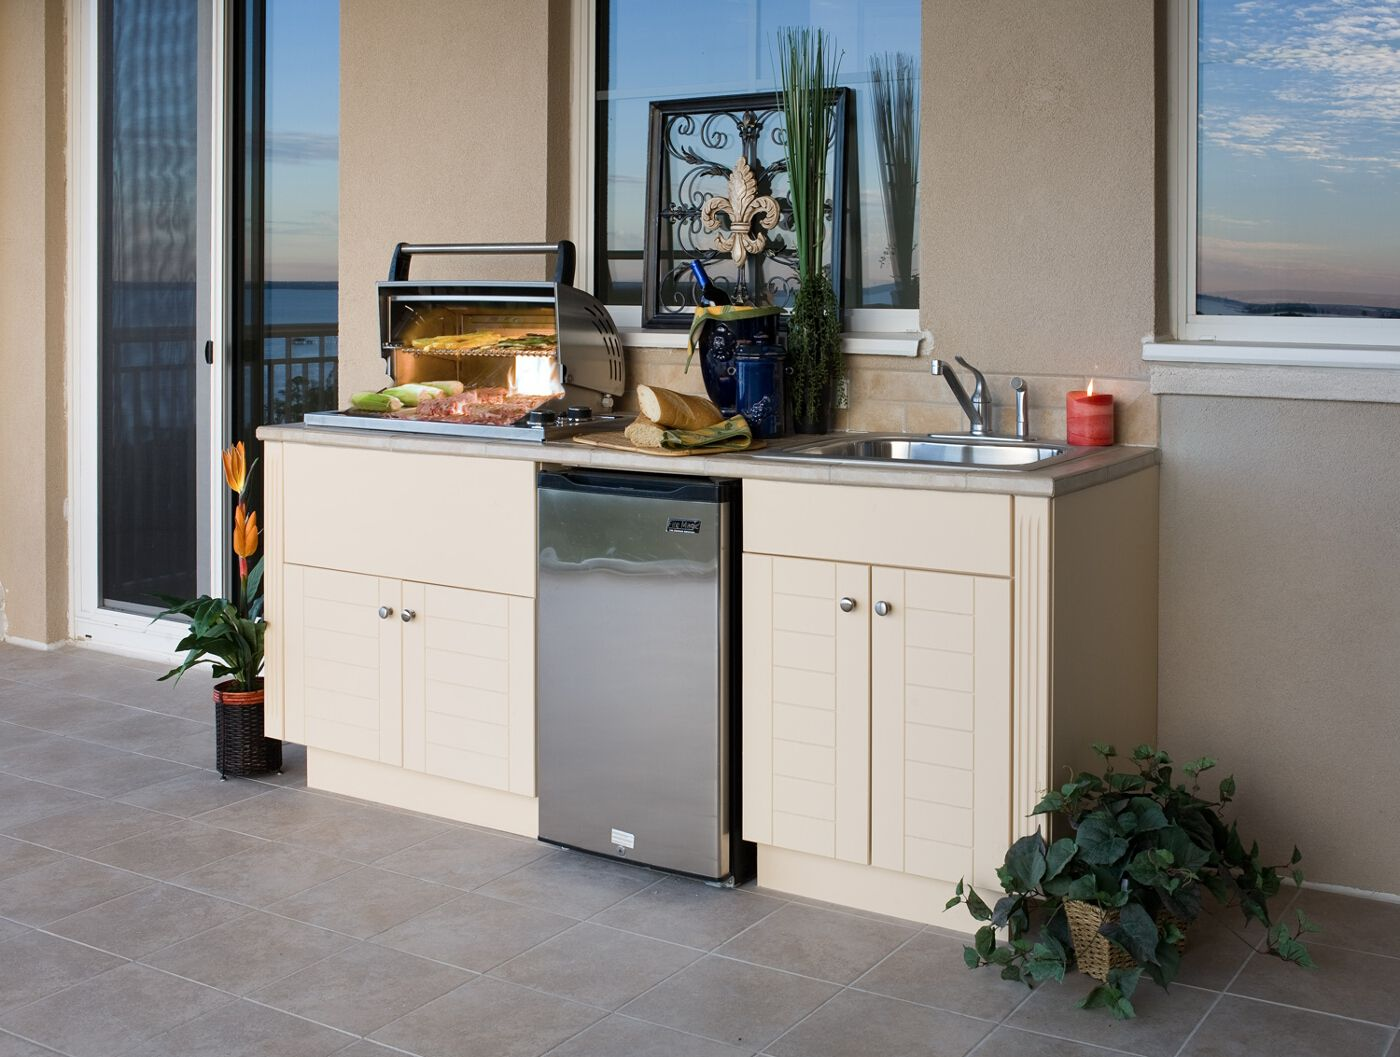 Have you ever imagine having an outdoor cabinets small polymer outdoor kitchen cabinet affordable polymer kitchen cabinets for outdoor kitchens